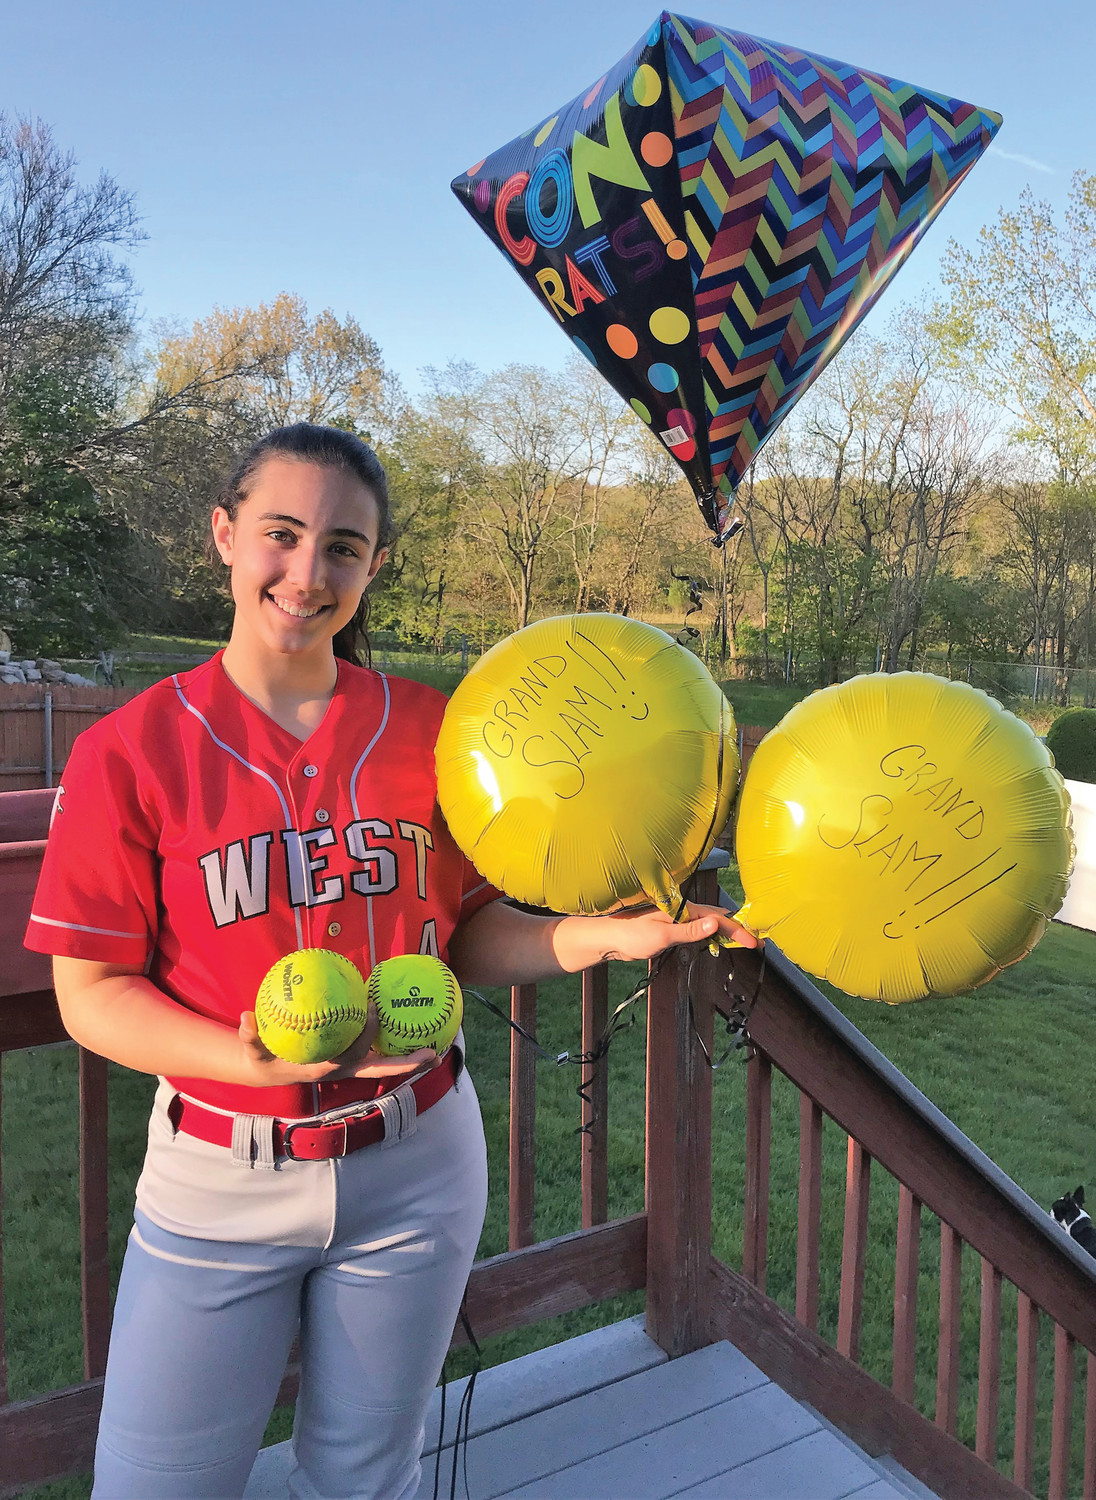 BIG GAME: Cranston West's Haley Travieso celebrates after her 10 -RBI game last week.